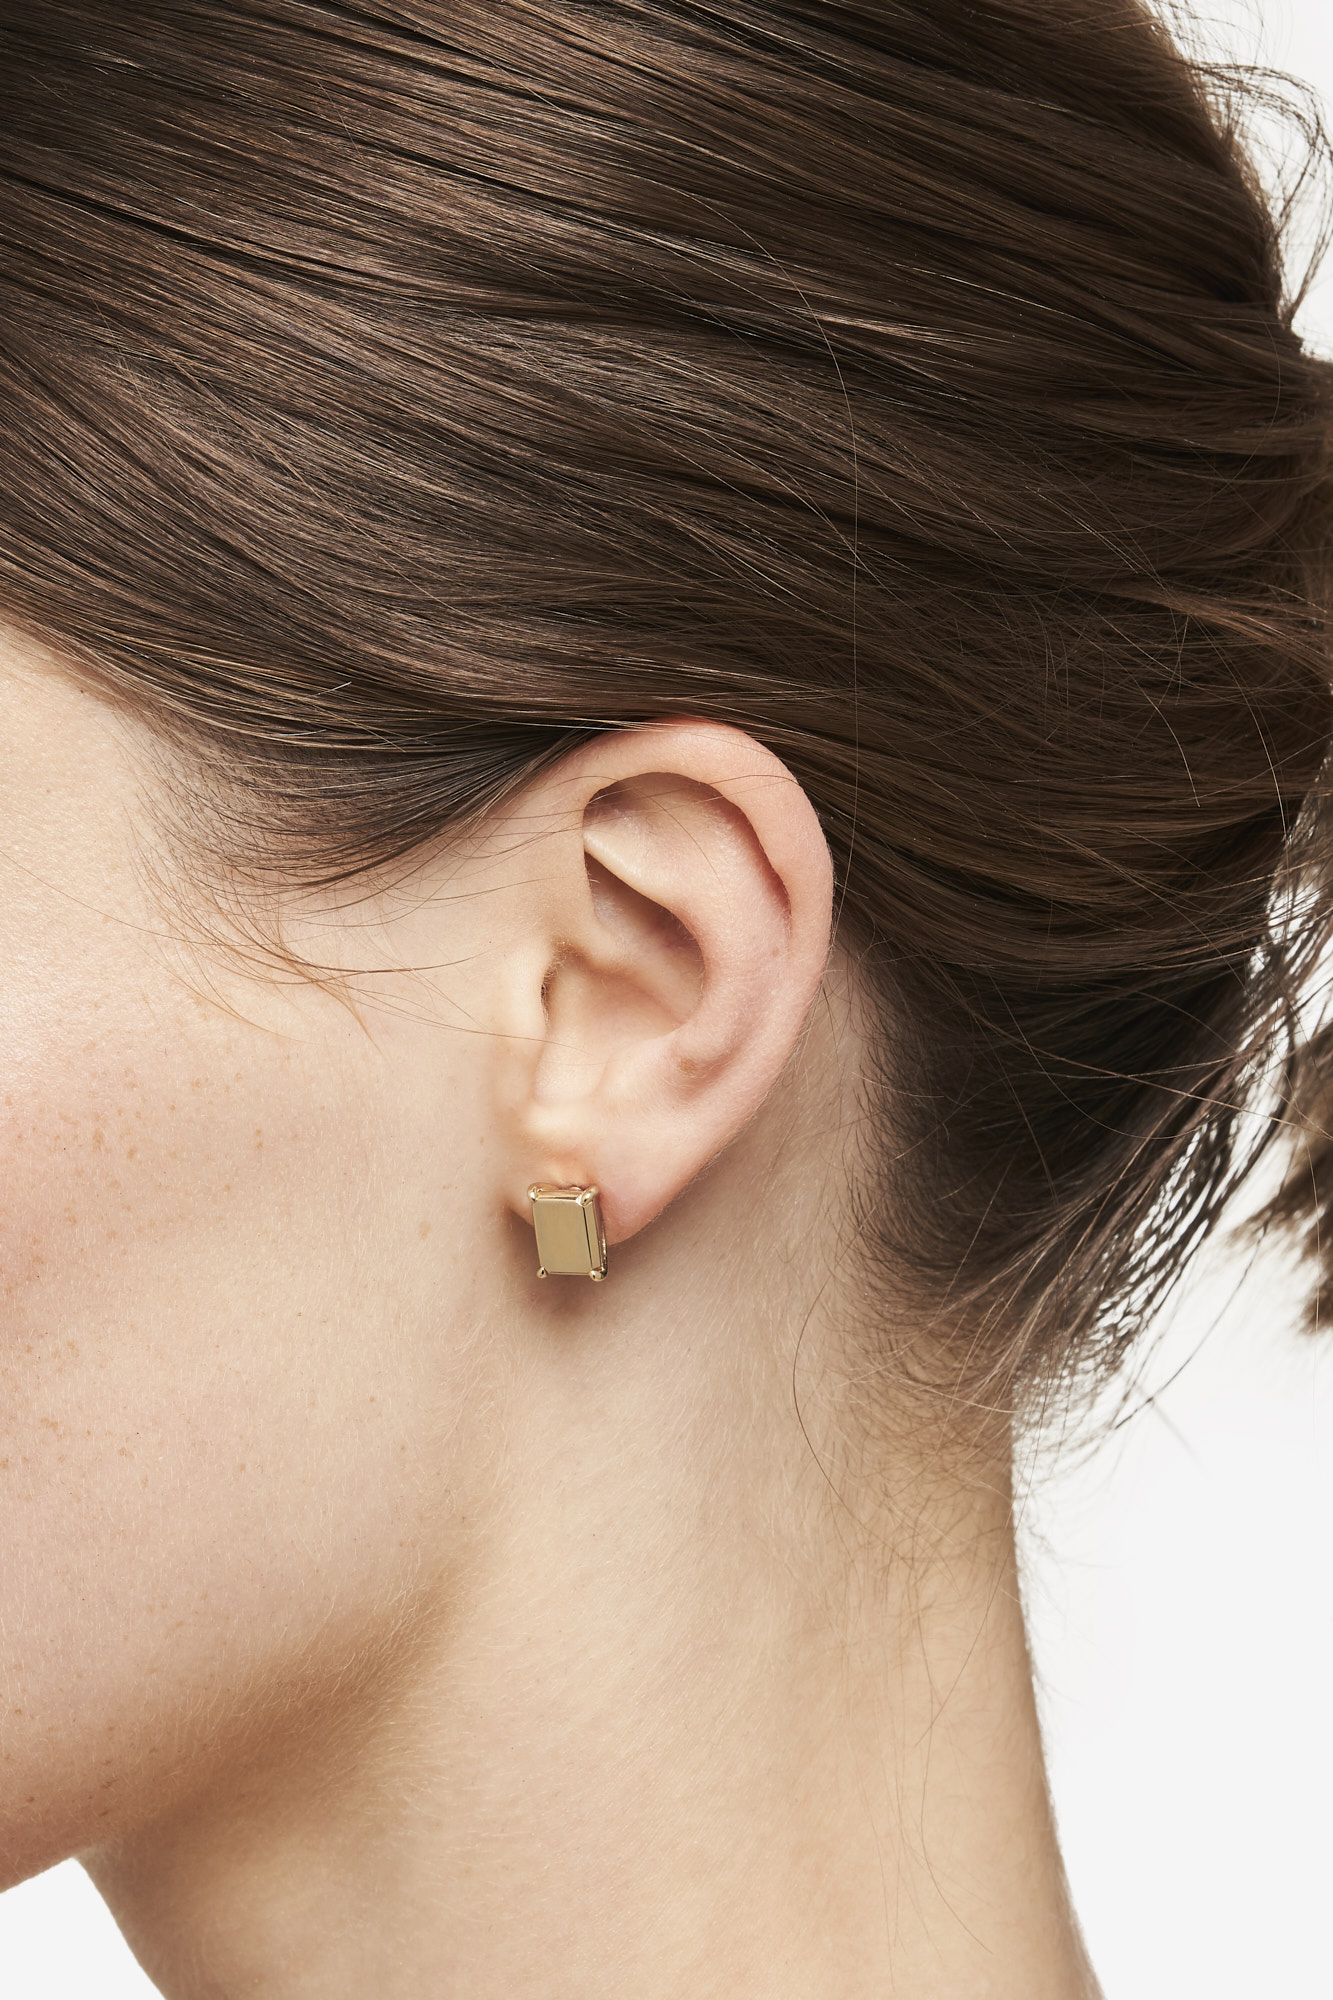 19-03-5-1-019-113-09_Baguette Earring_Gold Plated_02